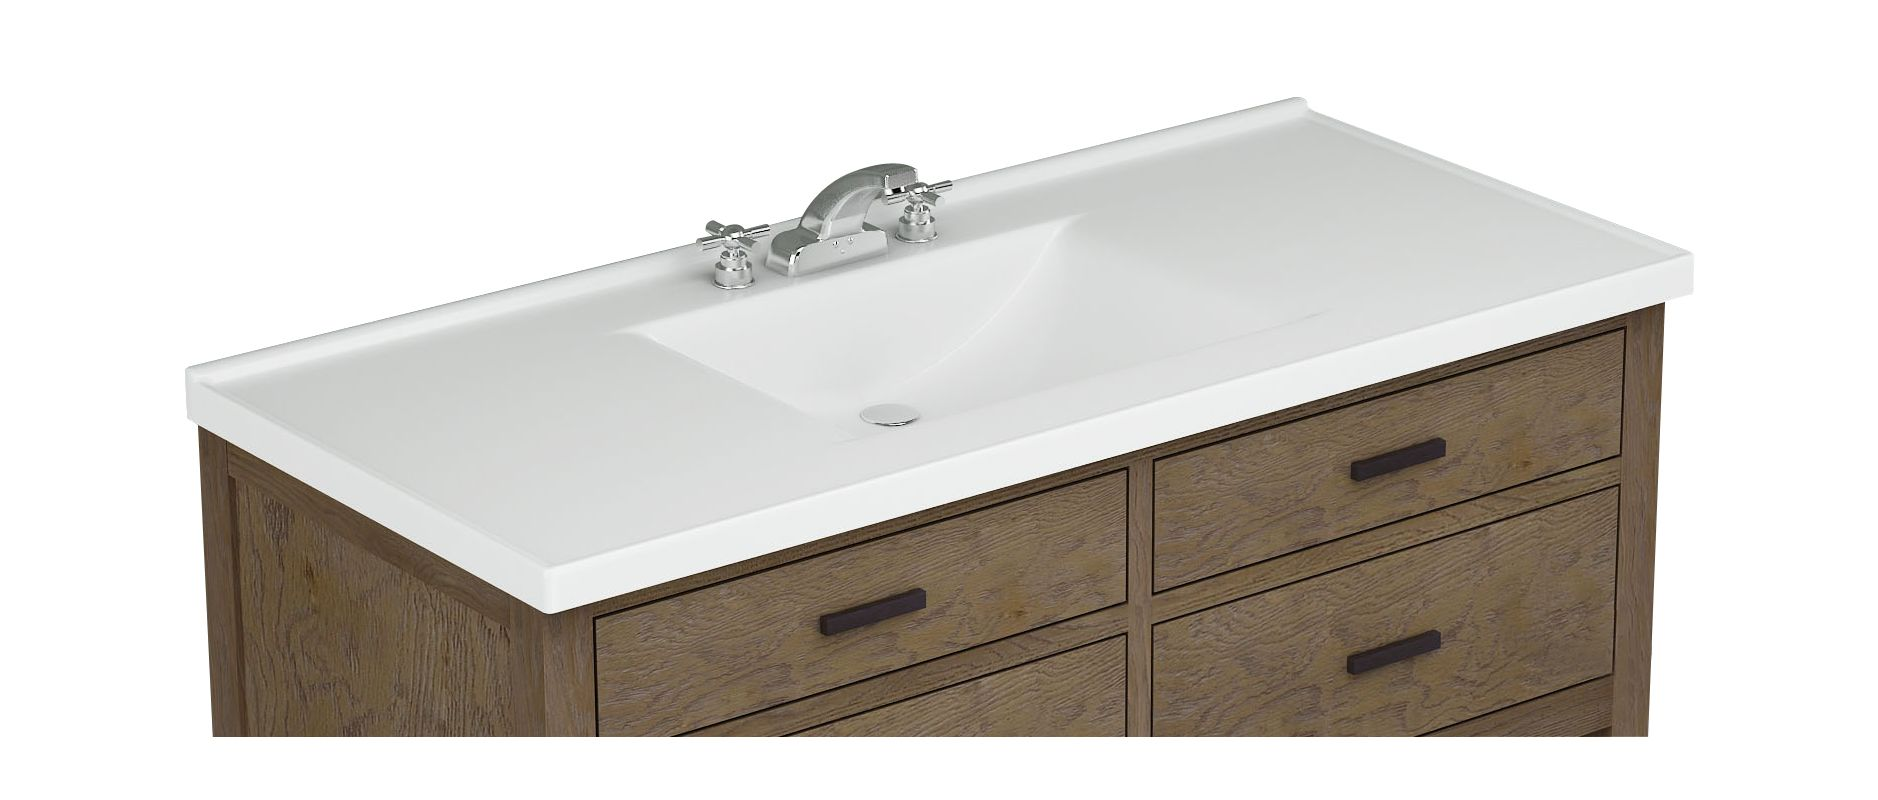 Sagehill Designs Wb4922 W White 49 Cultured Marble Vanity Top With Integrated Sink Faucet